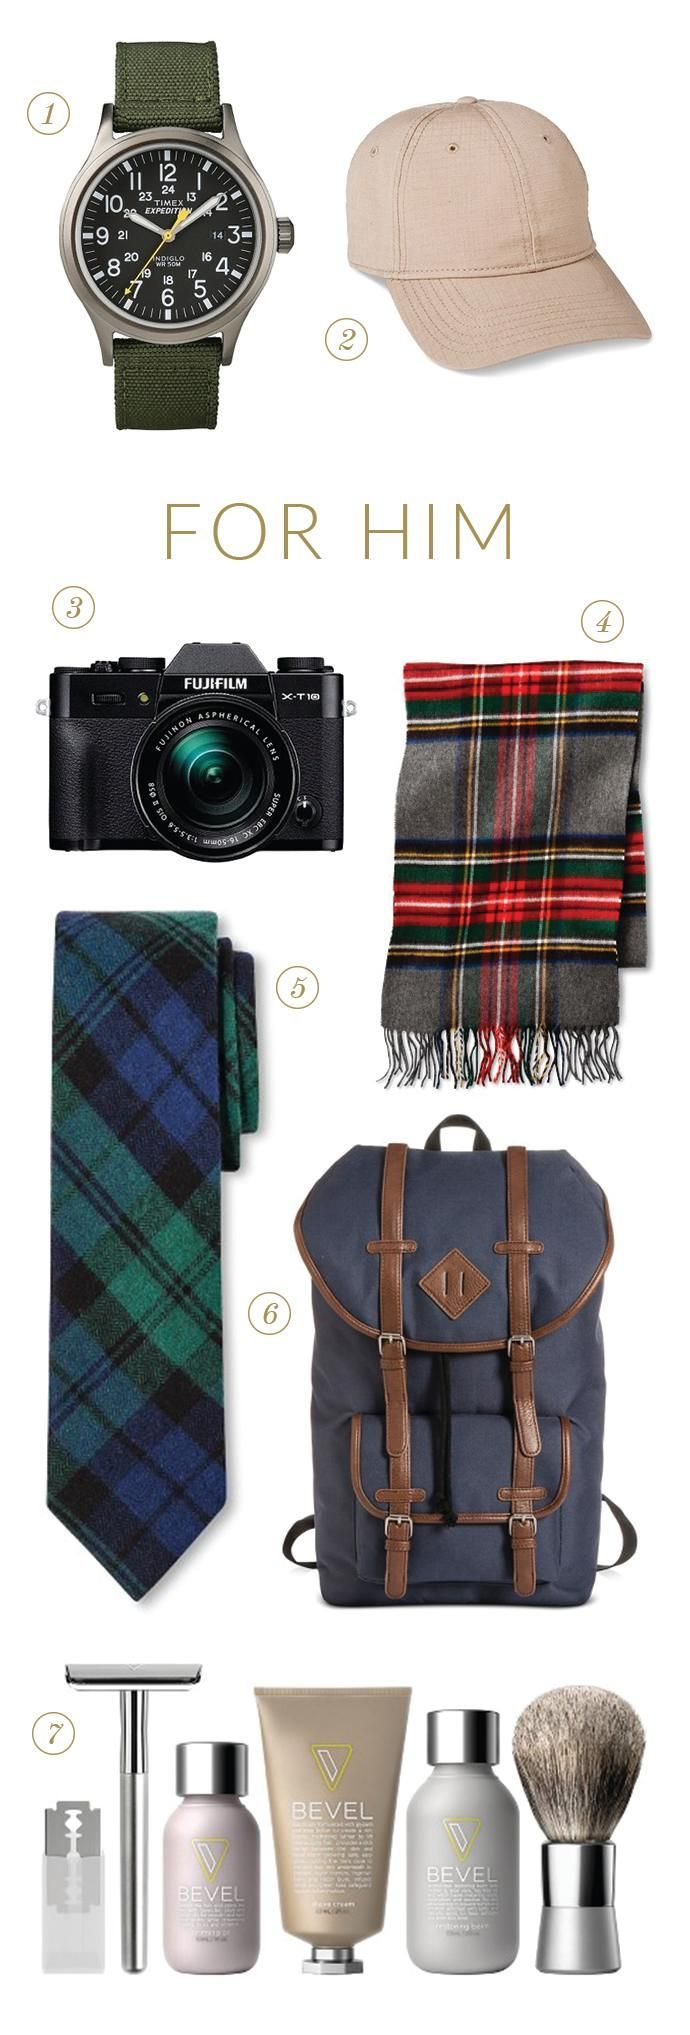 19 best HOLIDAY GIFT GUIDE images on Pinterest | Holiday gifts ...